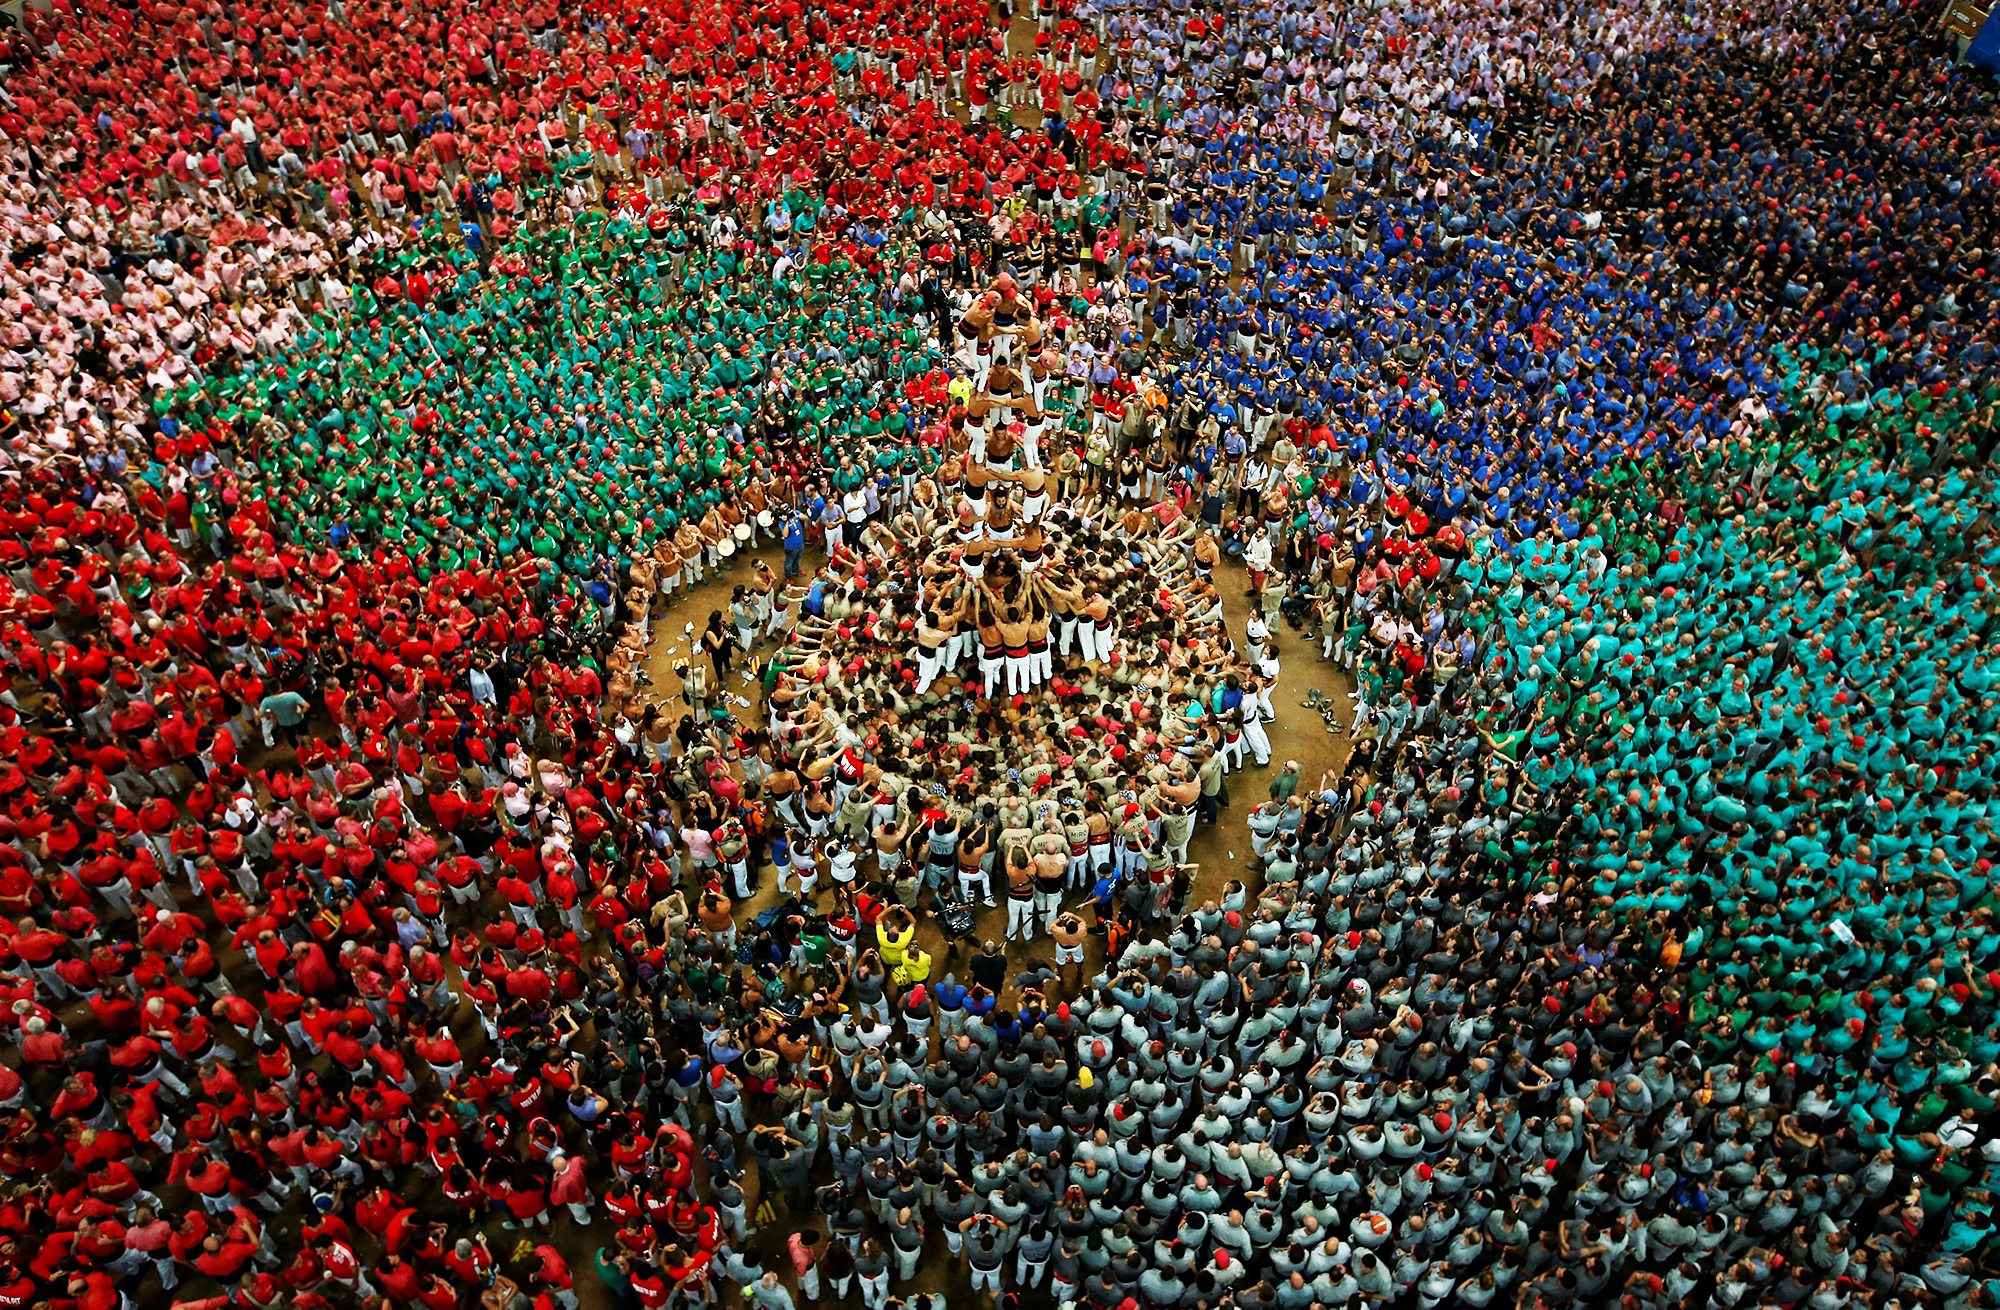 Xiquets de Reus  form a human tower during a competition in Tarragona, Spain, on Oct. 2, 2016.